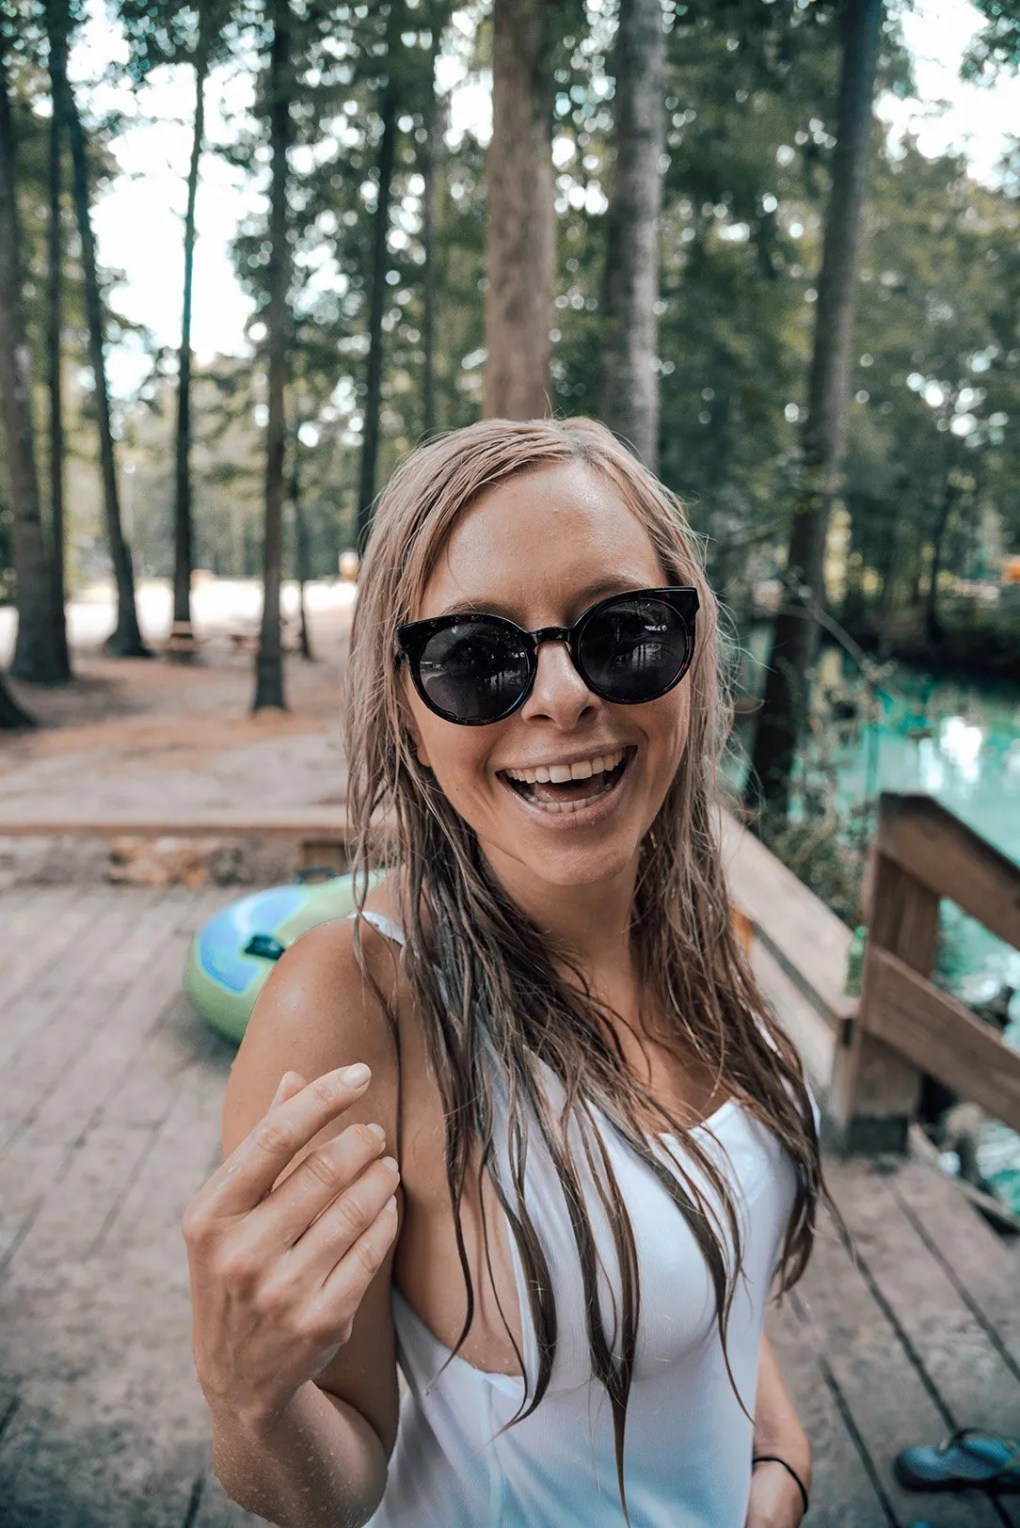 The perfect family trip to Ginnie Springs | Florida | USA